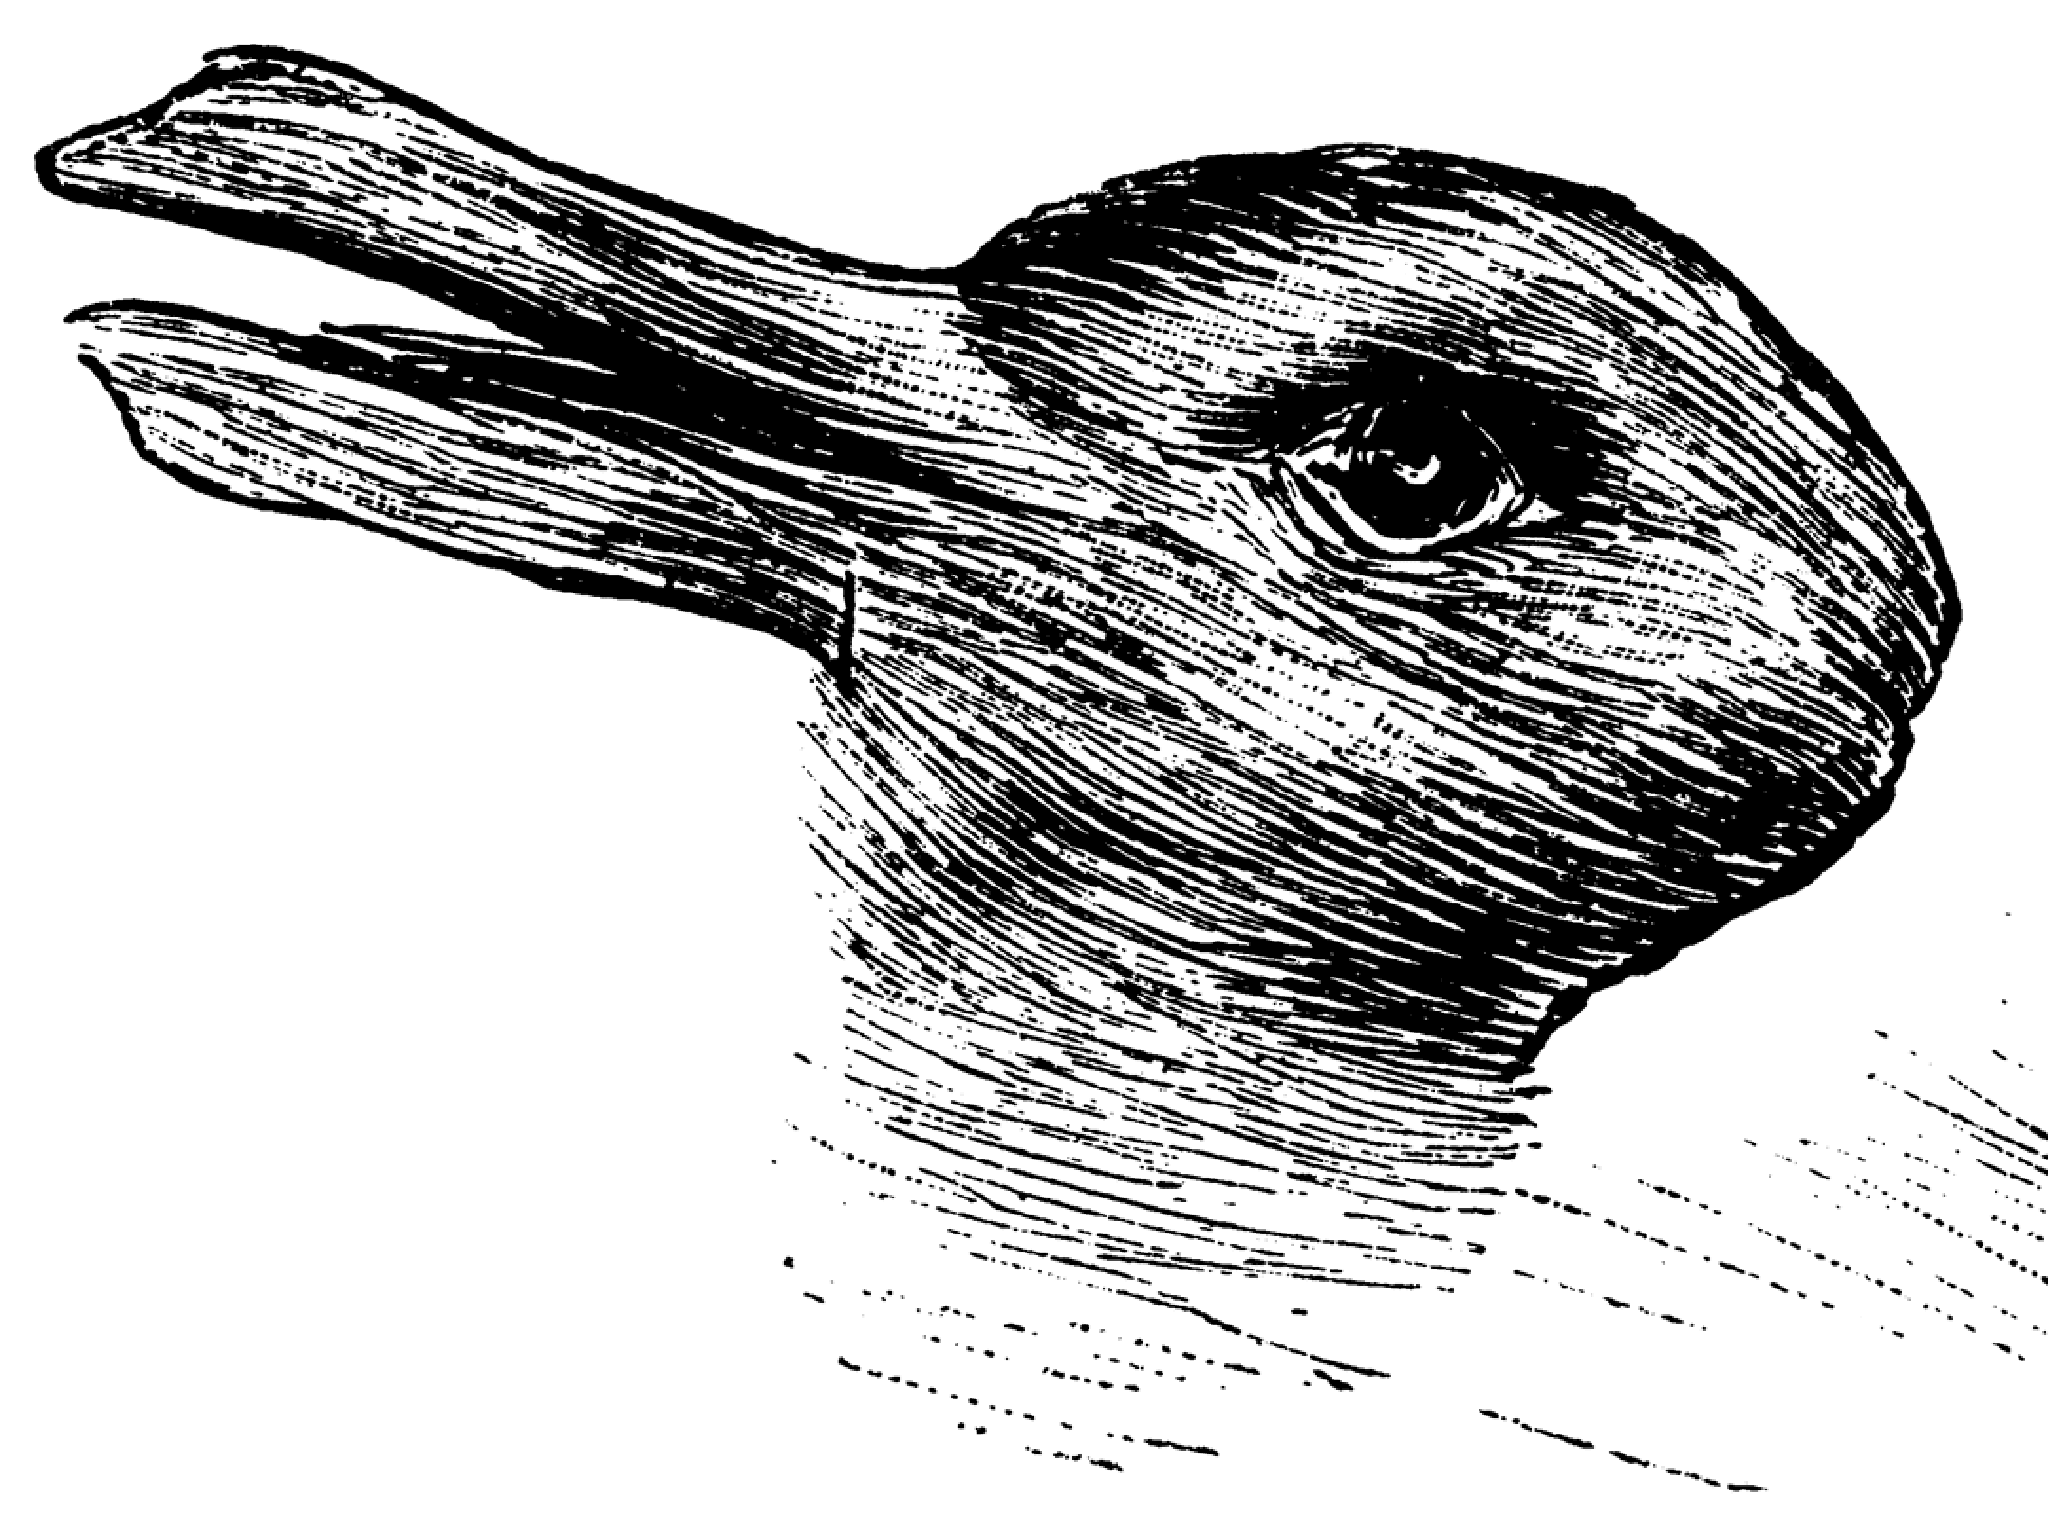 Drawn rabbit psychological Illusion tell or you that